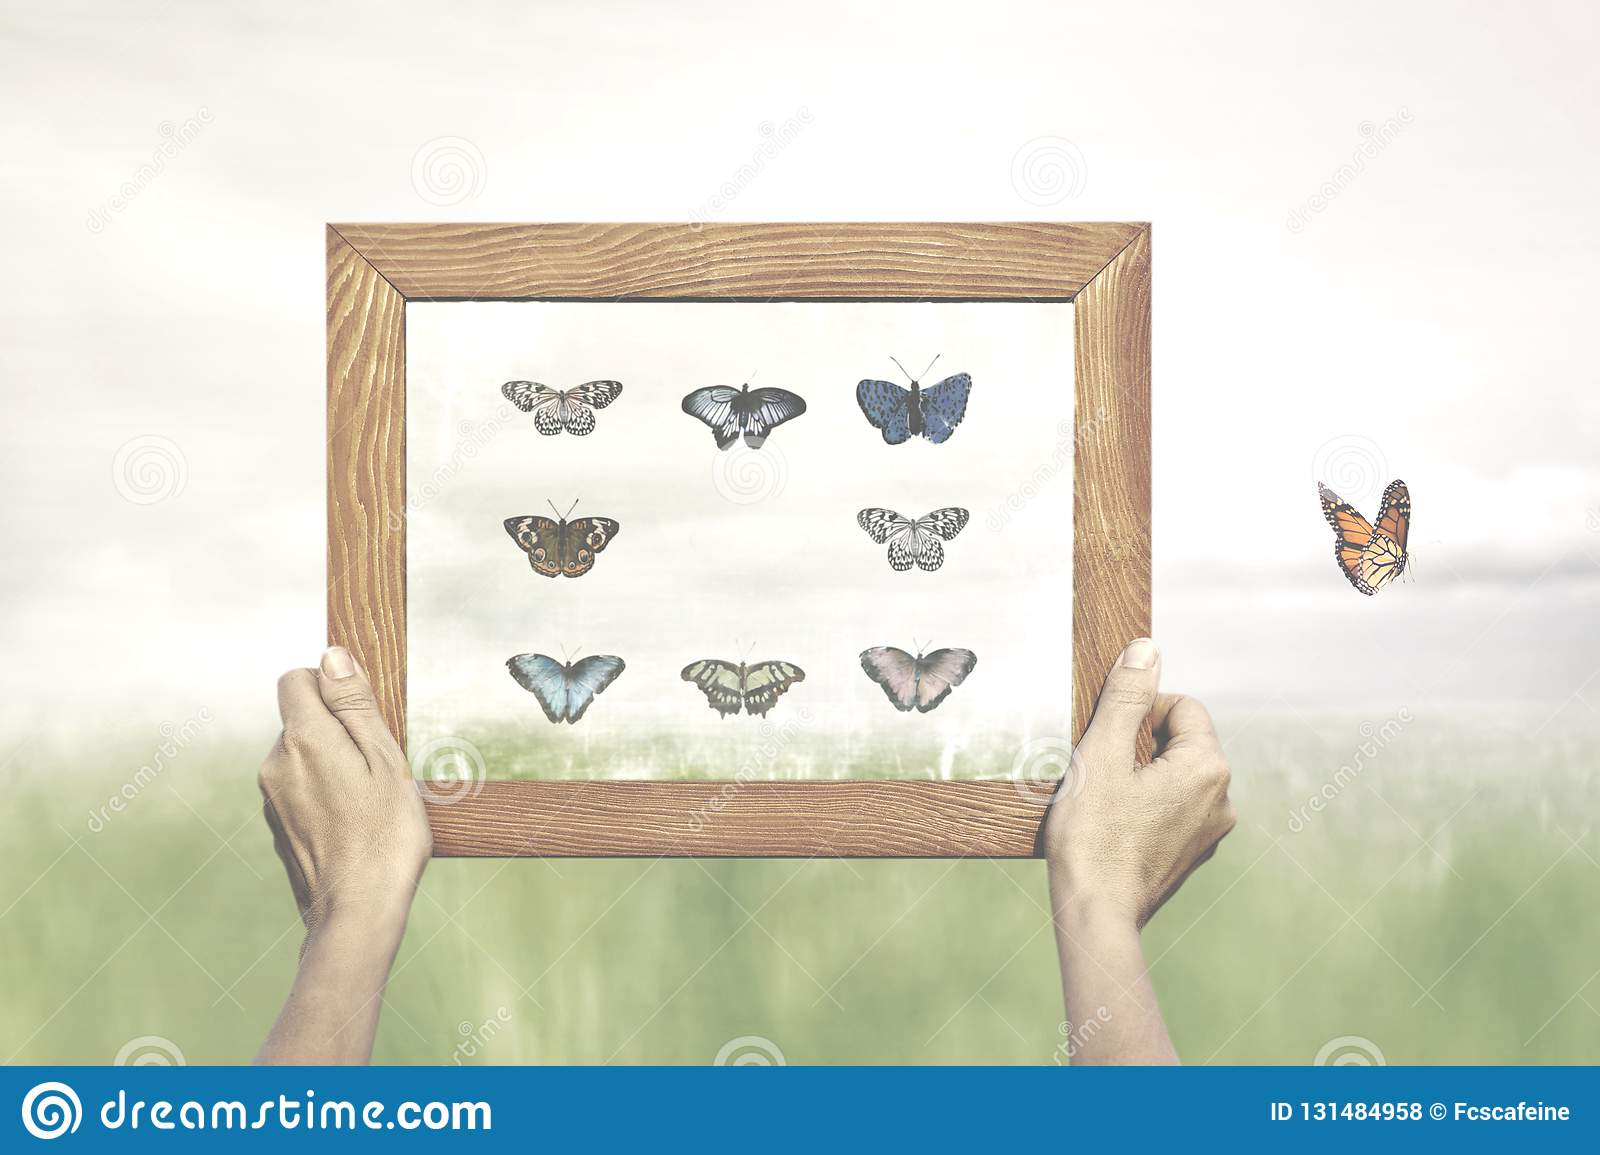 Concept of freedom of a butterfly escaping from the painting of his collector